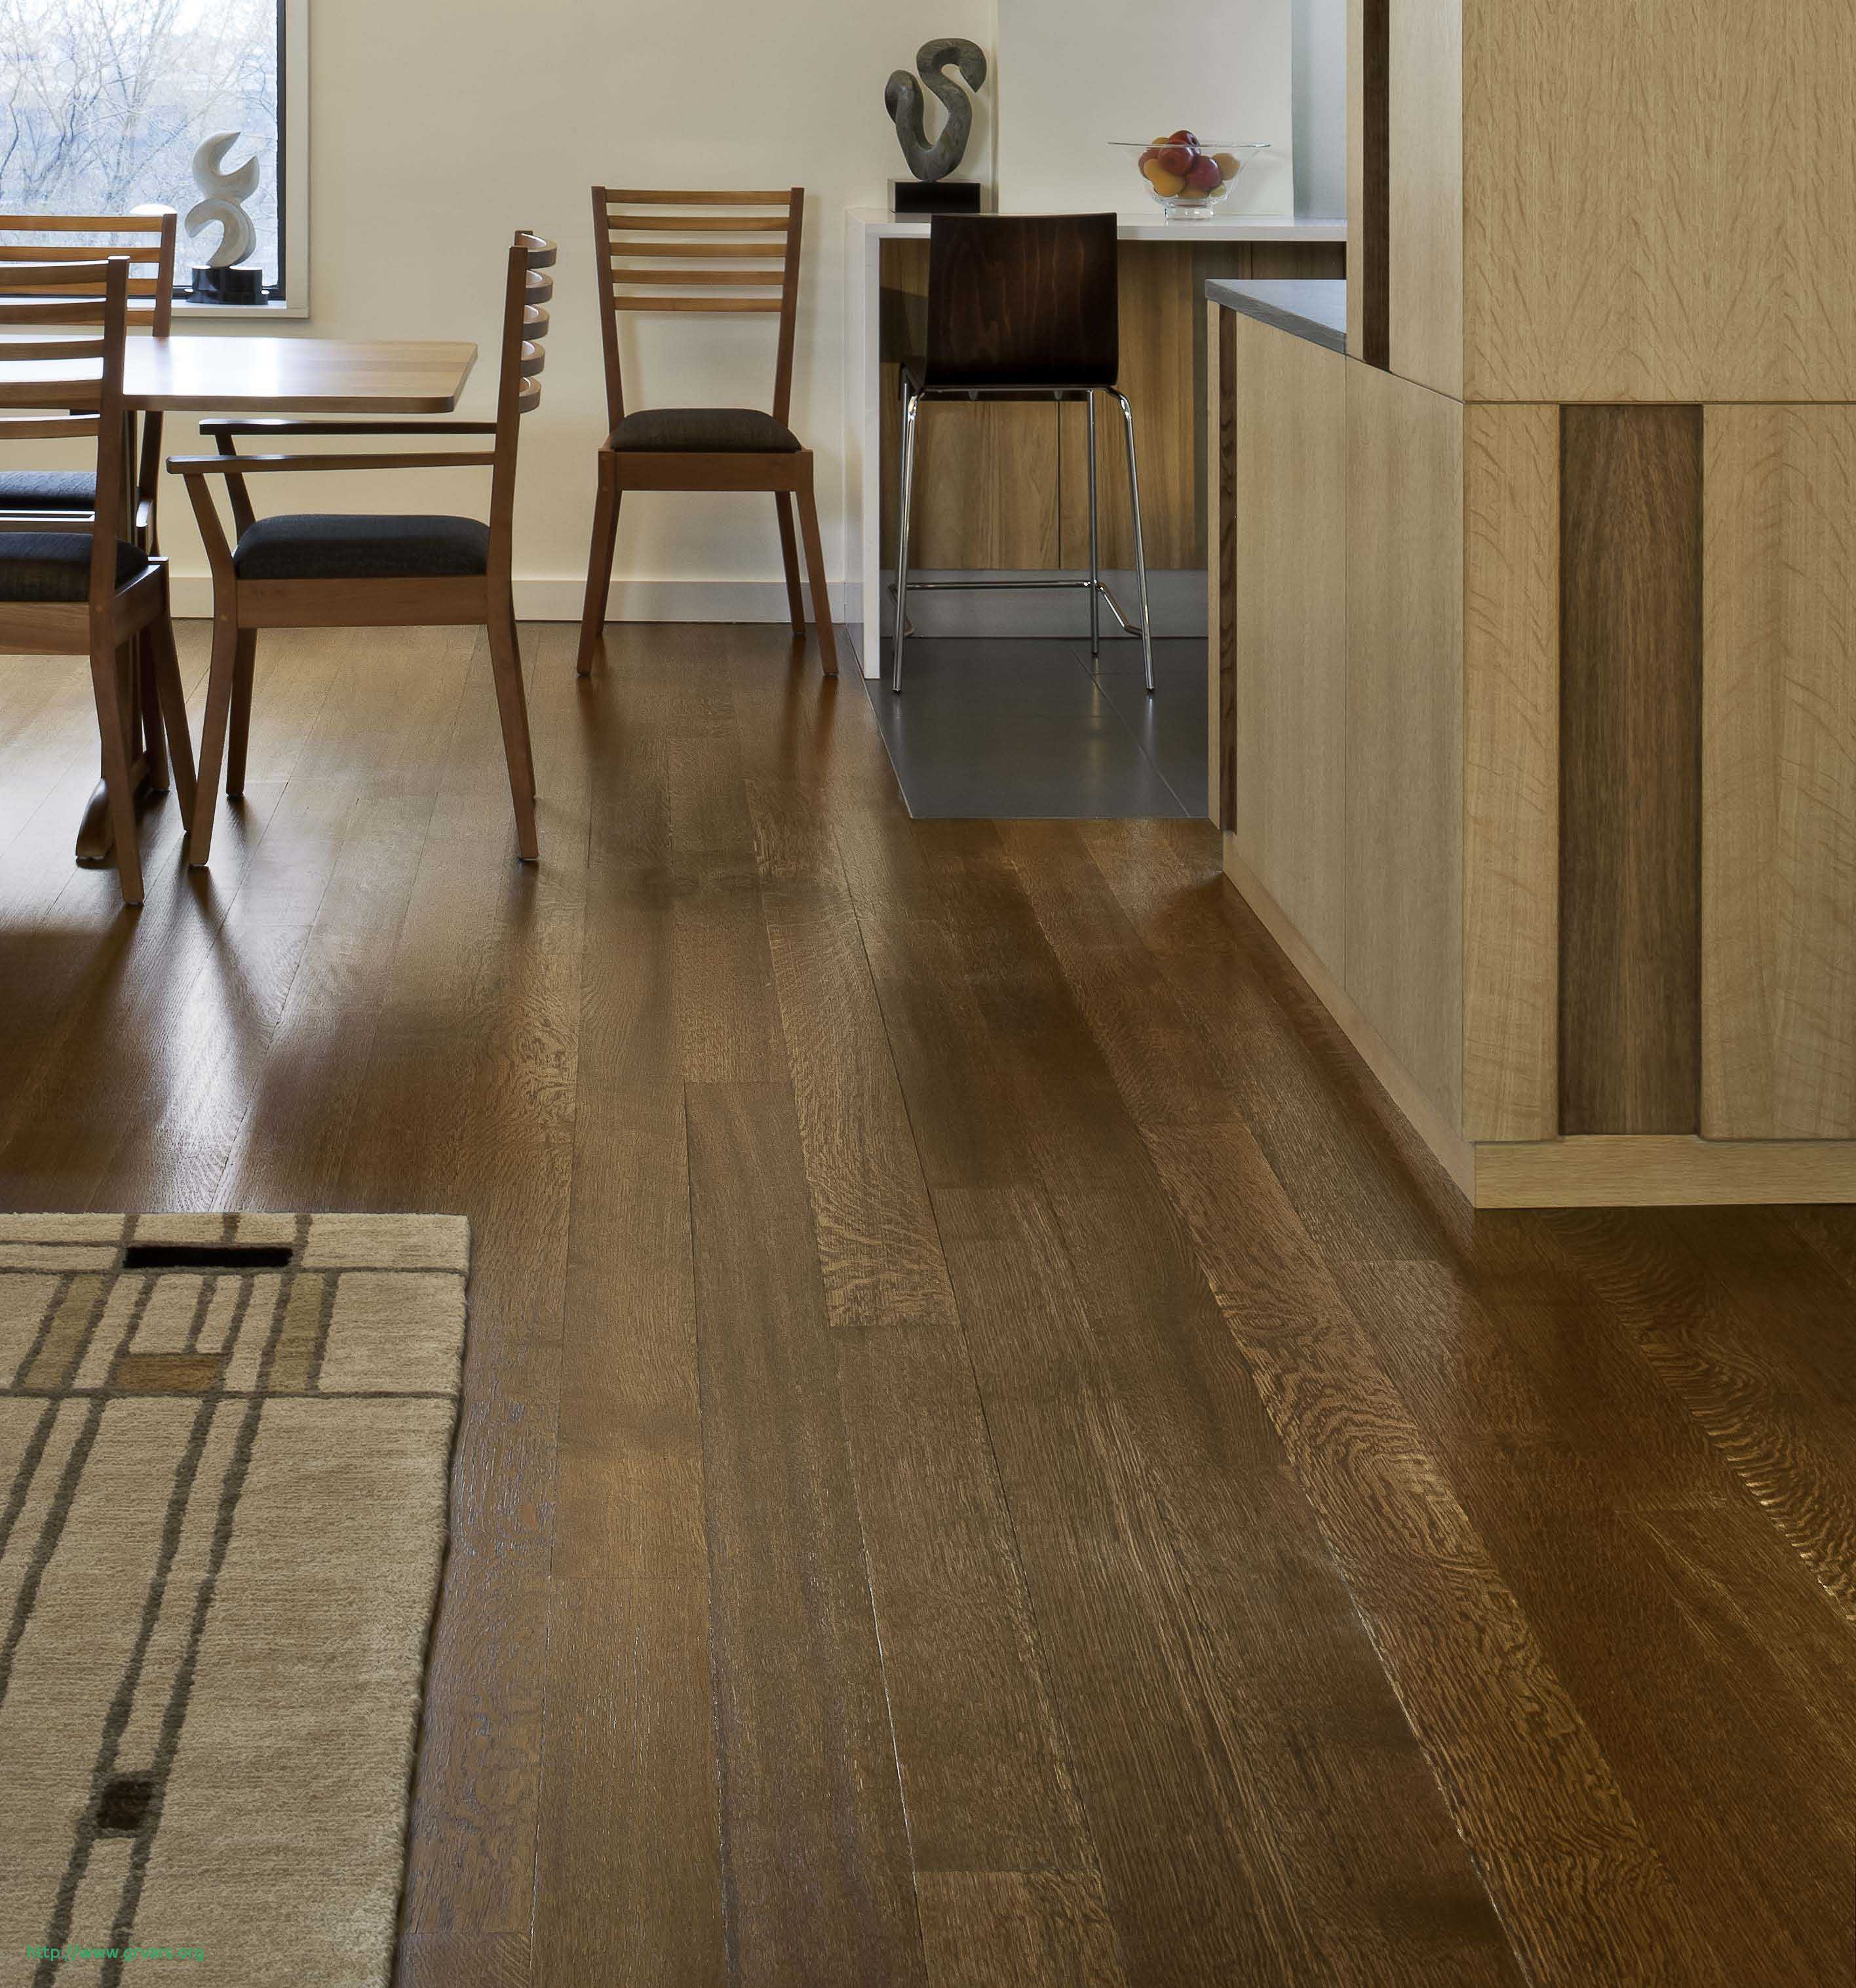 imperial walnut hardwood flooring of country white floor stain inspirant engaging discount hardwood for country white floor stain inspirant engaging discount hardwood flooring 5 where to buy inspirational 0d